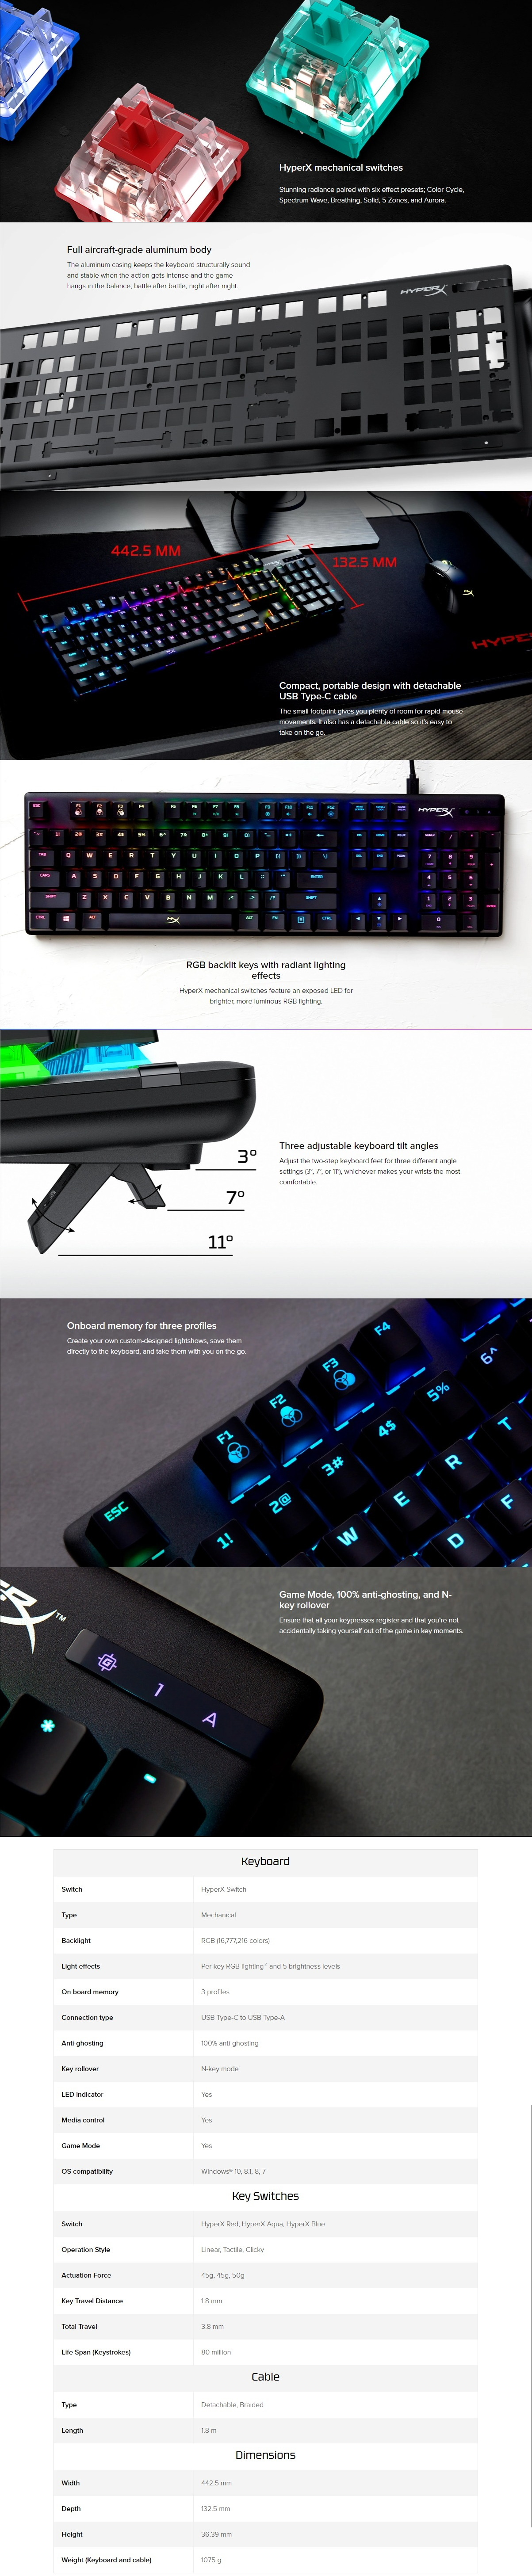 A large marketing image providing additional information about the product Kingston HyperX Alloy Origins RGB Mechanical Gaming Keyboard (MX Blue Switch) - Additional alt info not provided